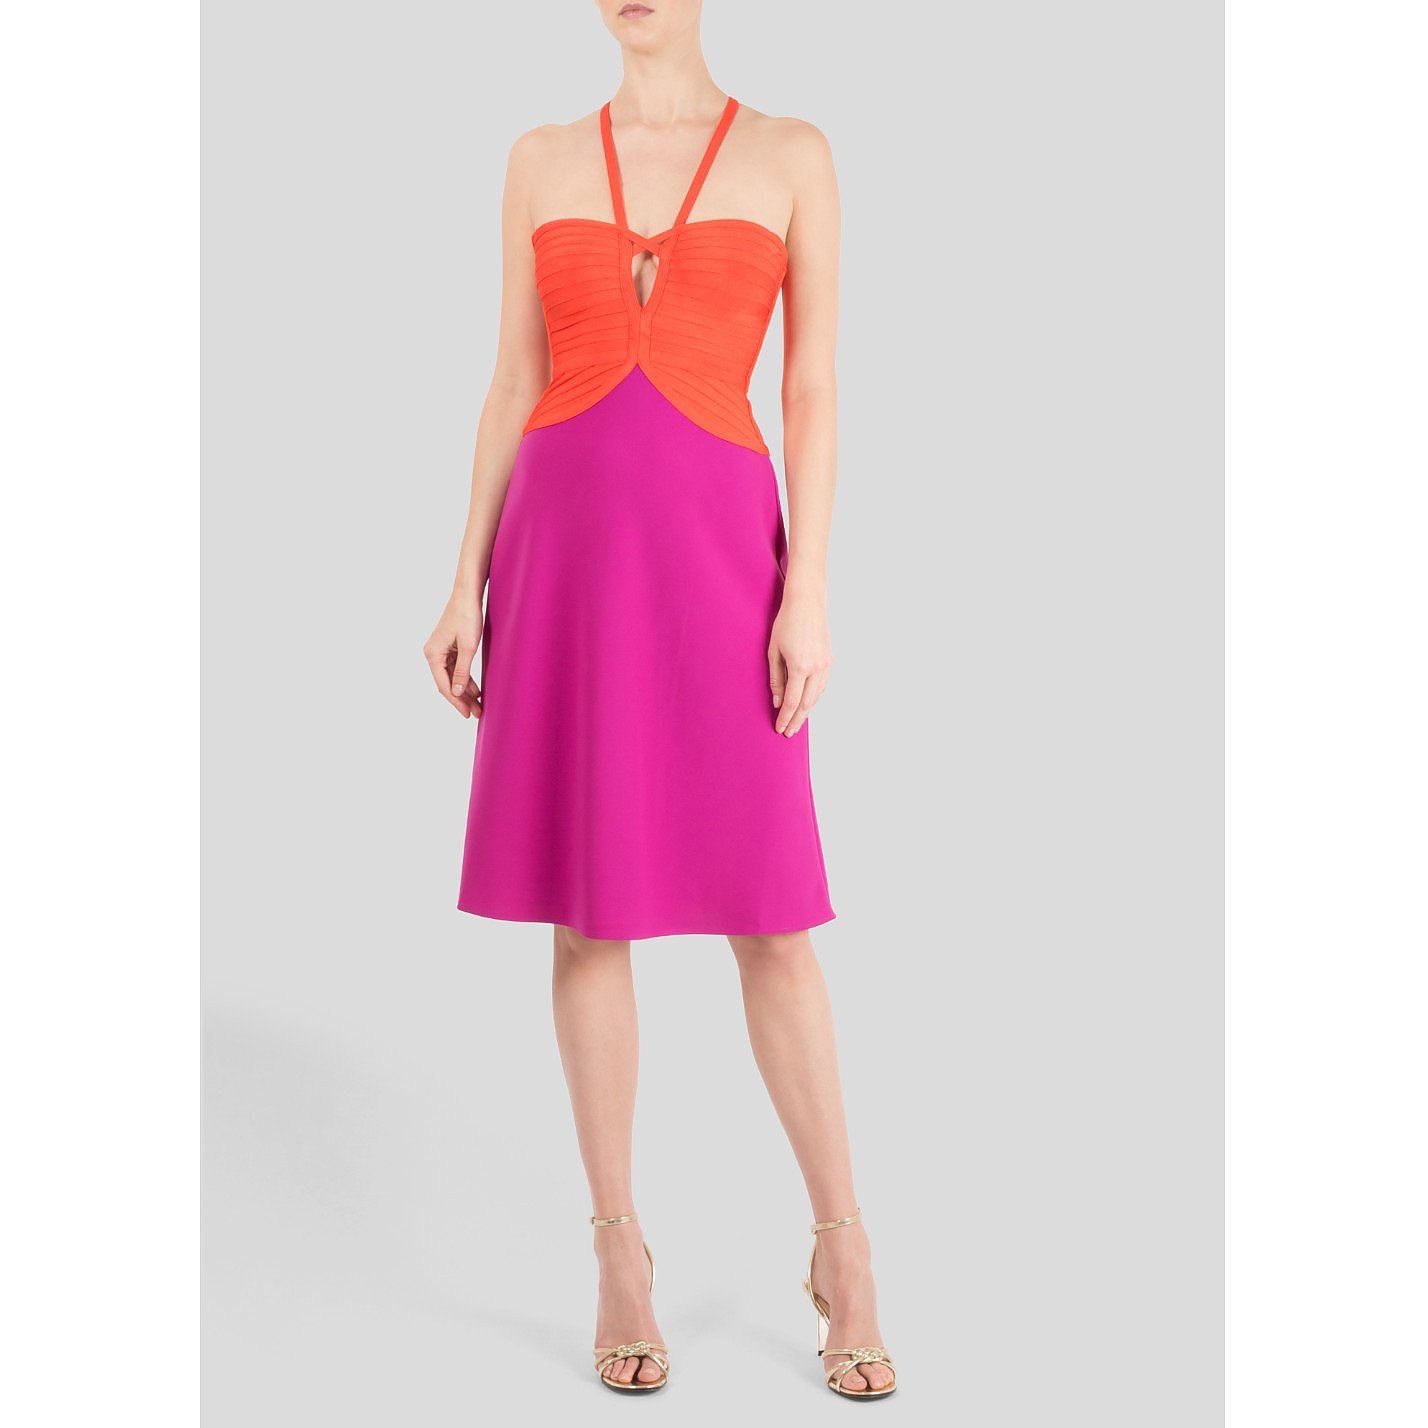 Herve Leger Two Tone Cut-Out Dress